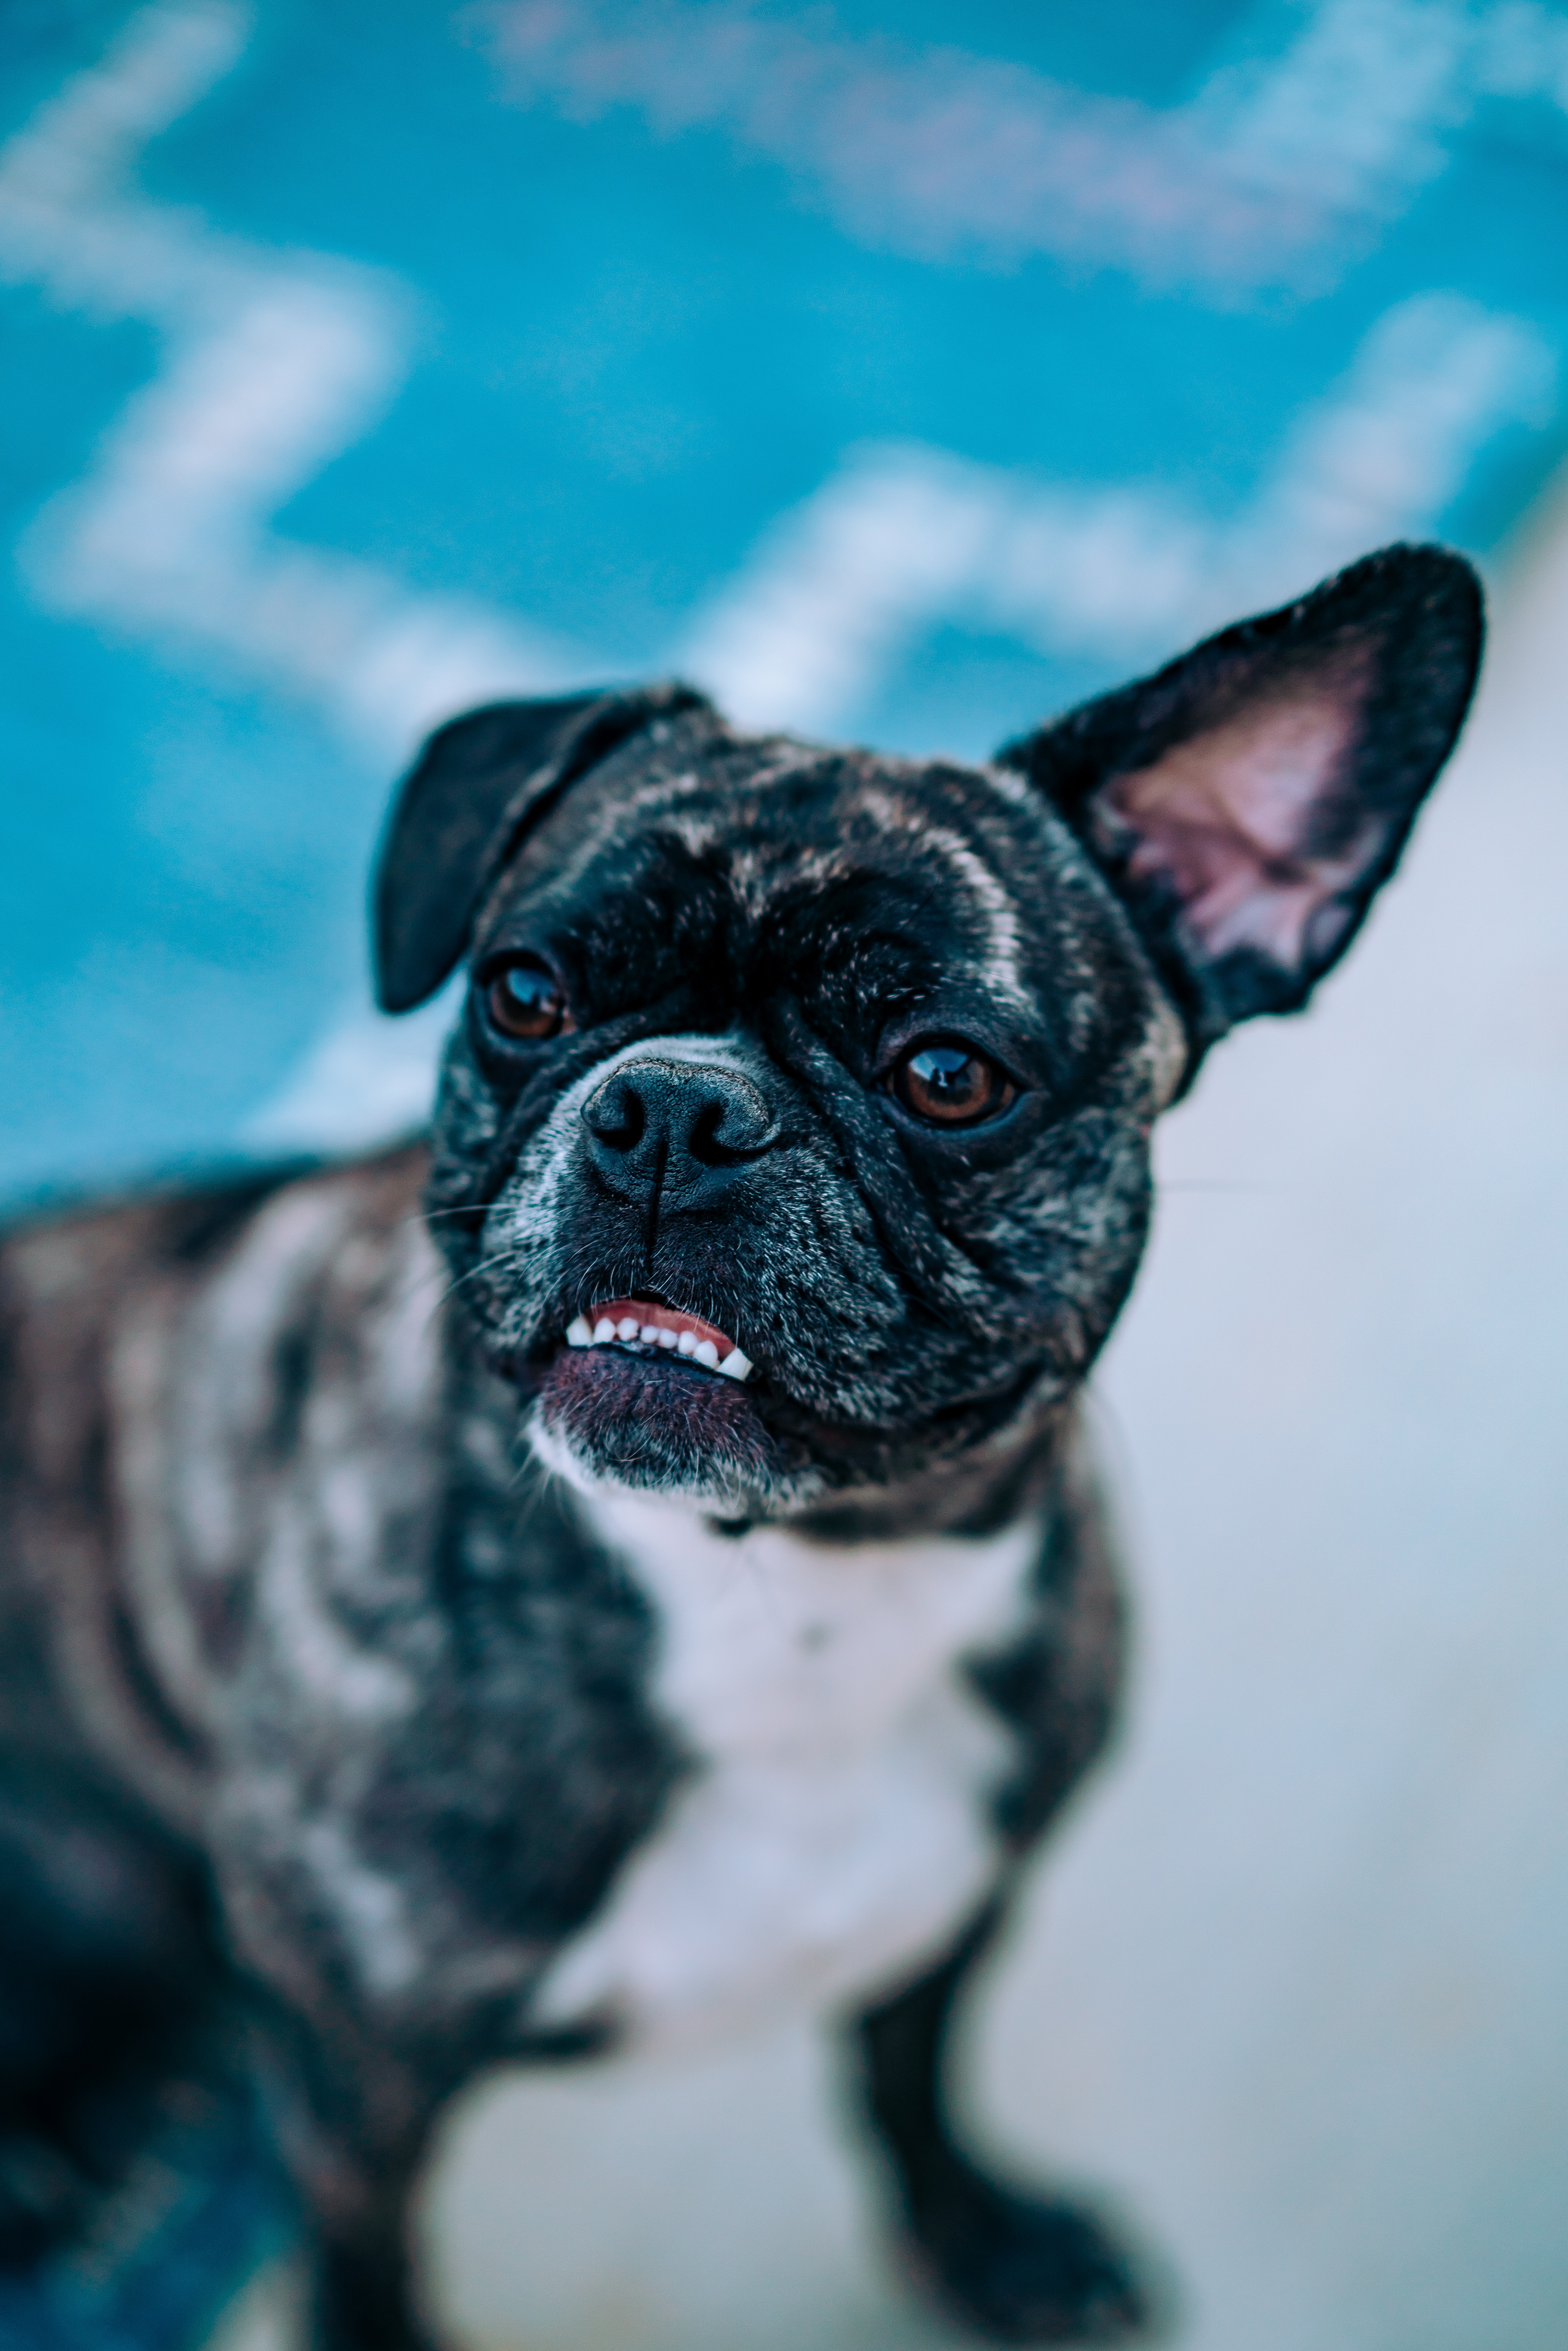 78665 download wallpaper Animals, Bulldog, Dog, Funny, Pet screensavers and pictures for free